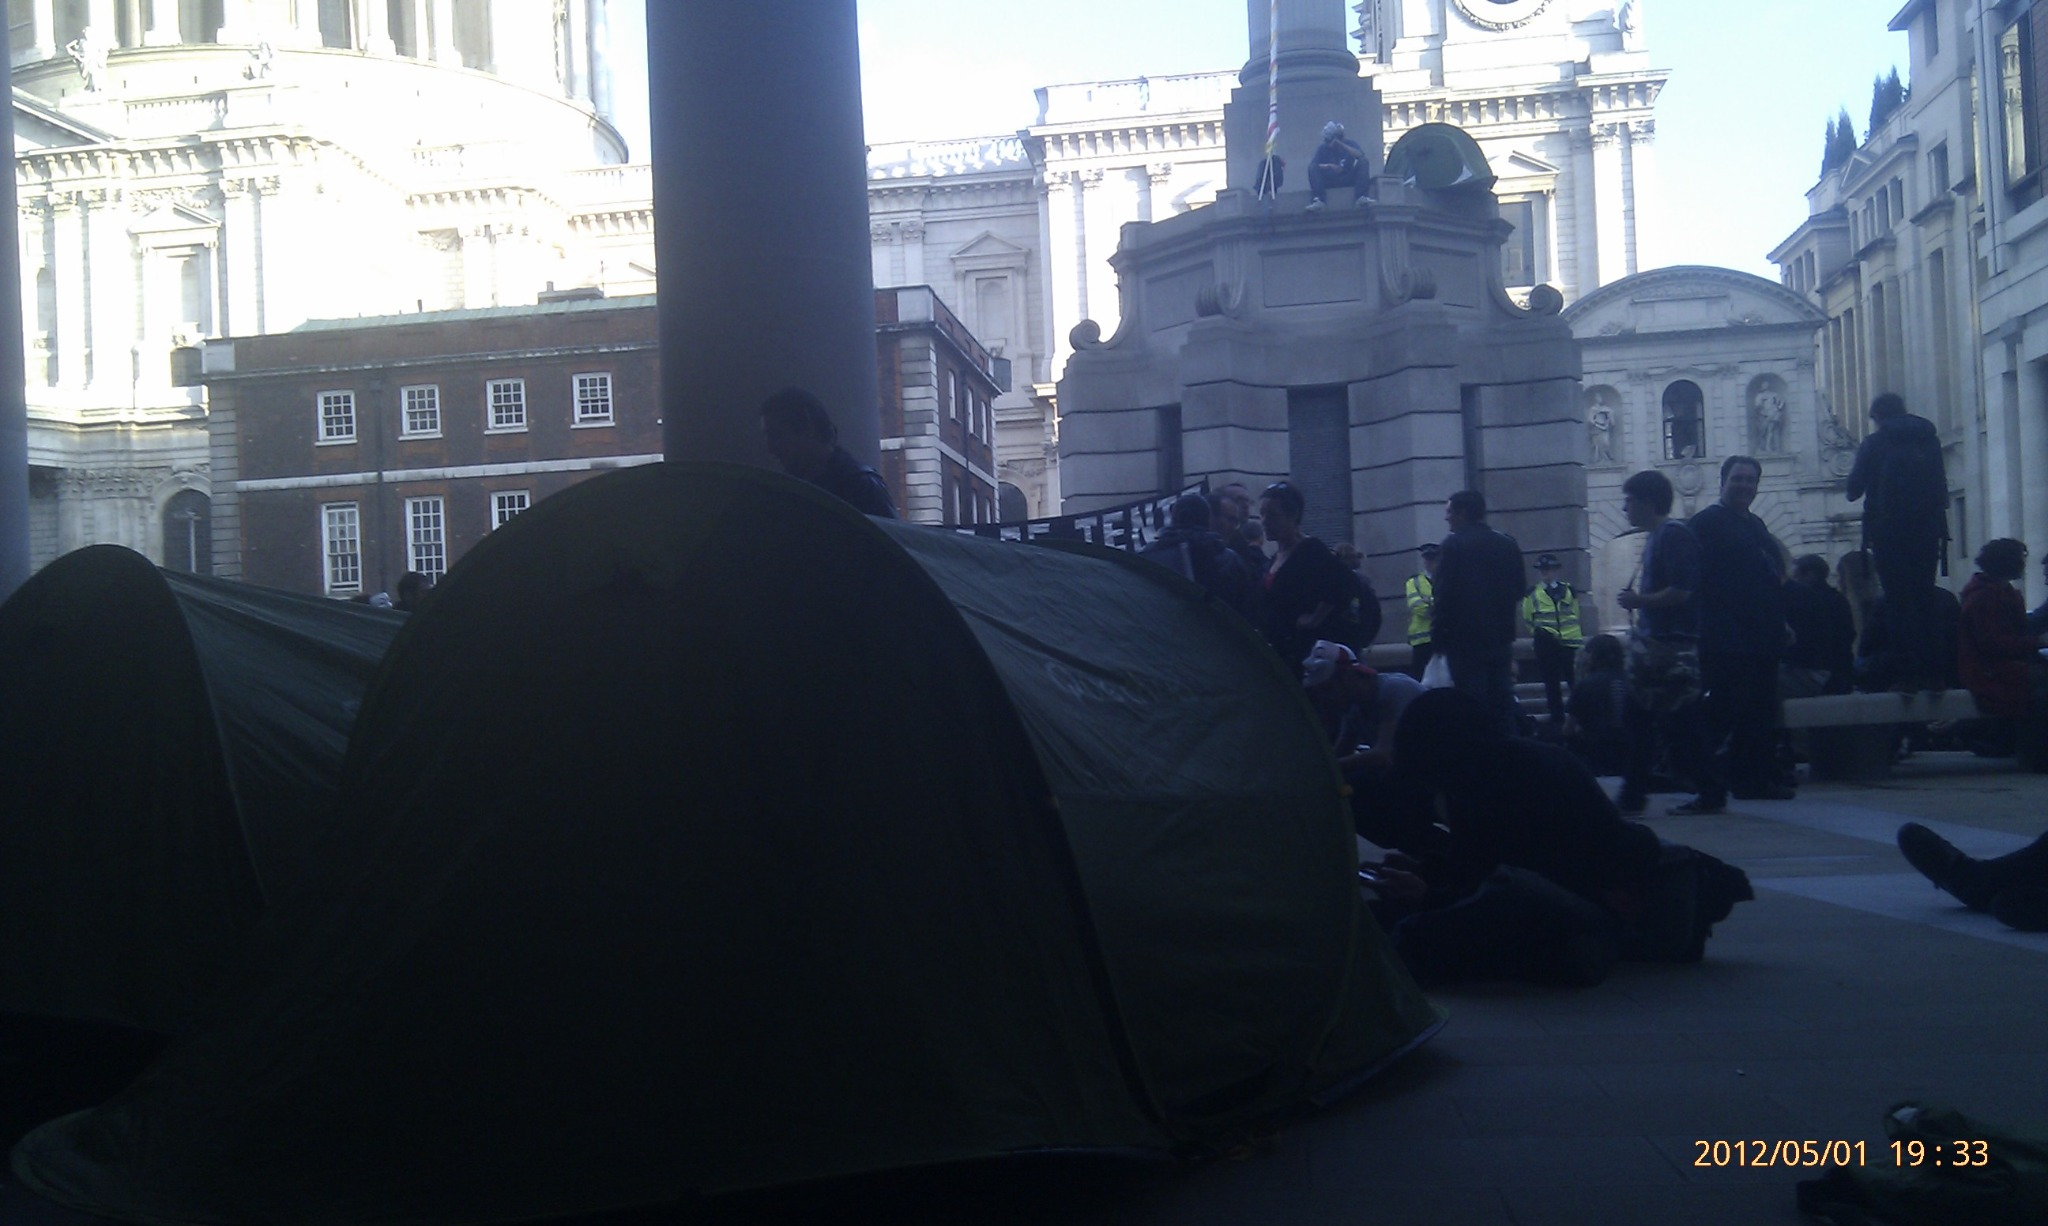 RT @billybragg: @OccupyLondon back where it all began: London Stock Exchange finally occupied! #ows #mayday #occupymay http://t.co/nMG7mVUT